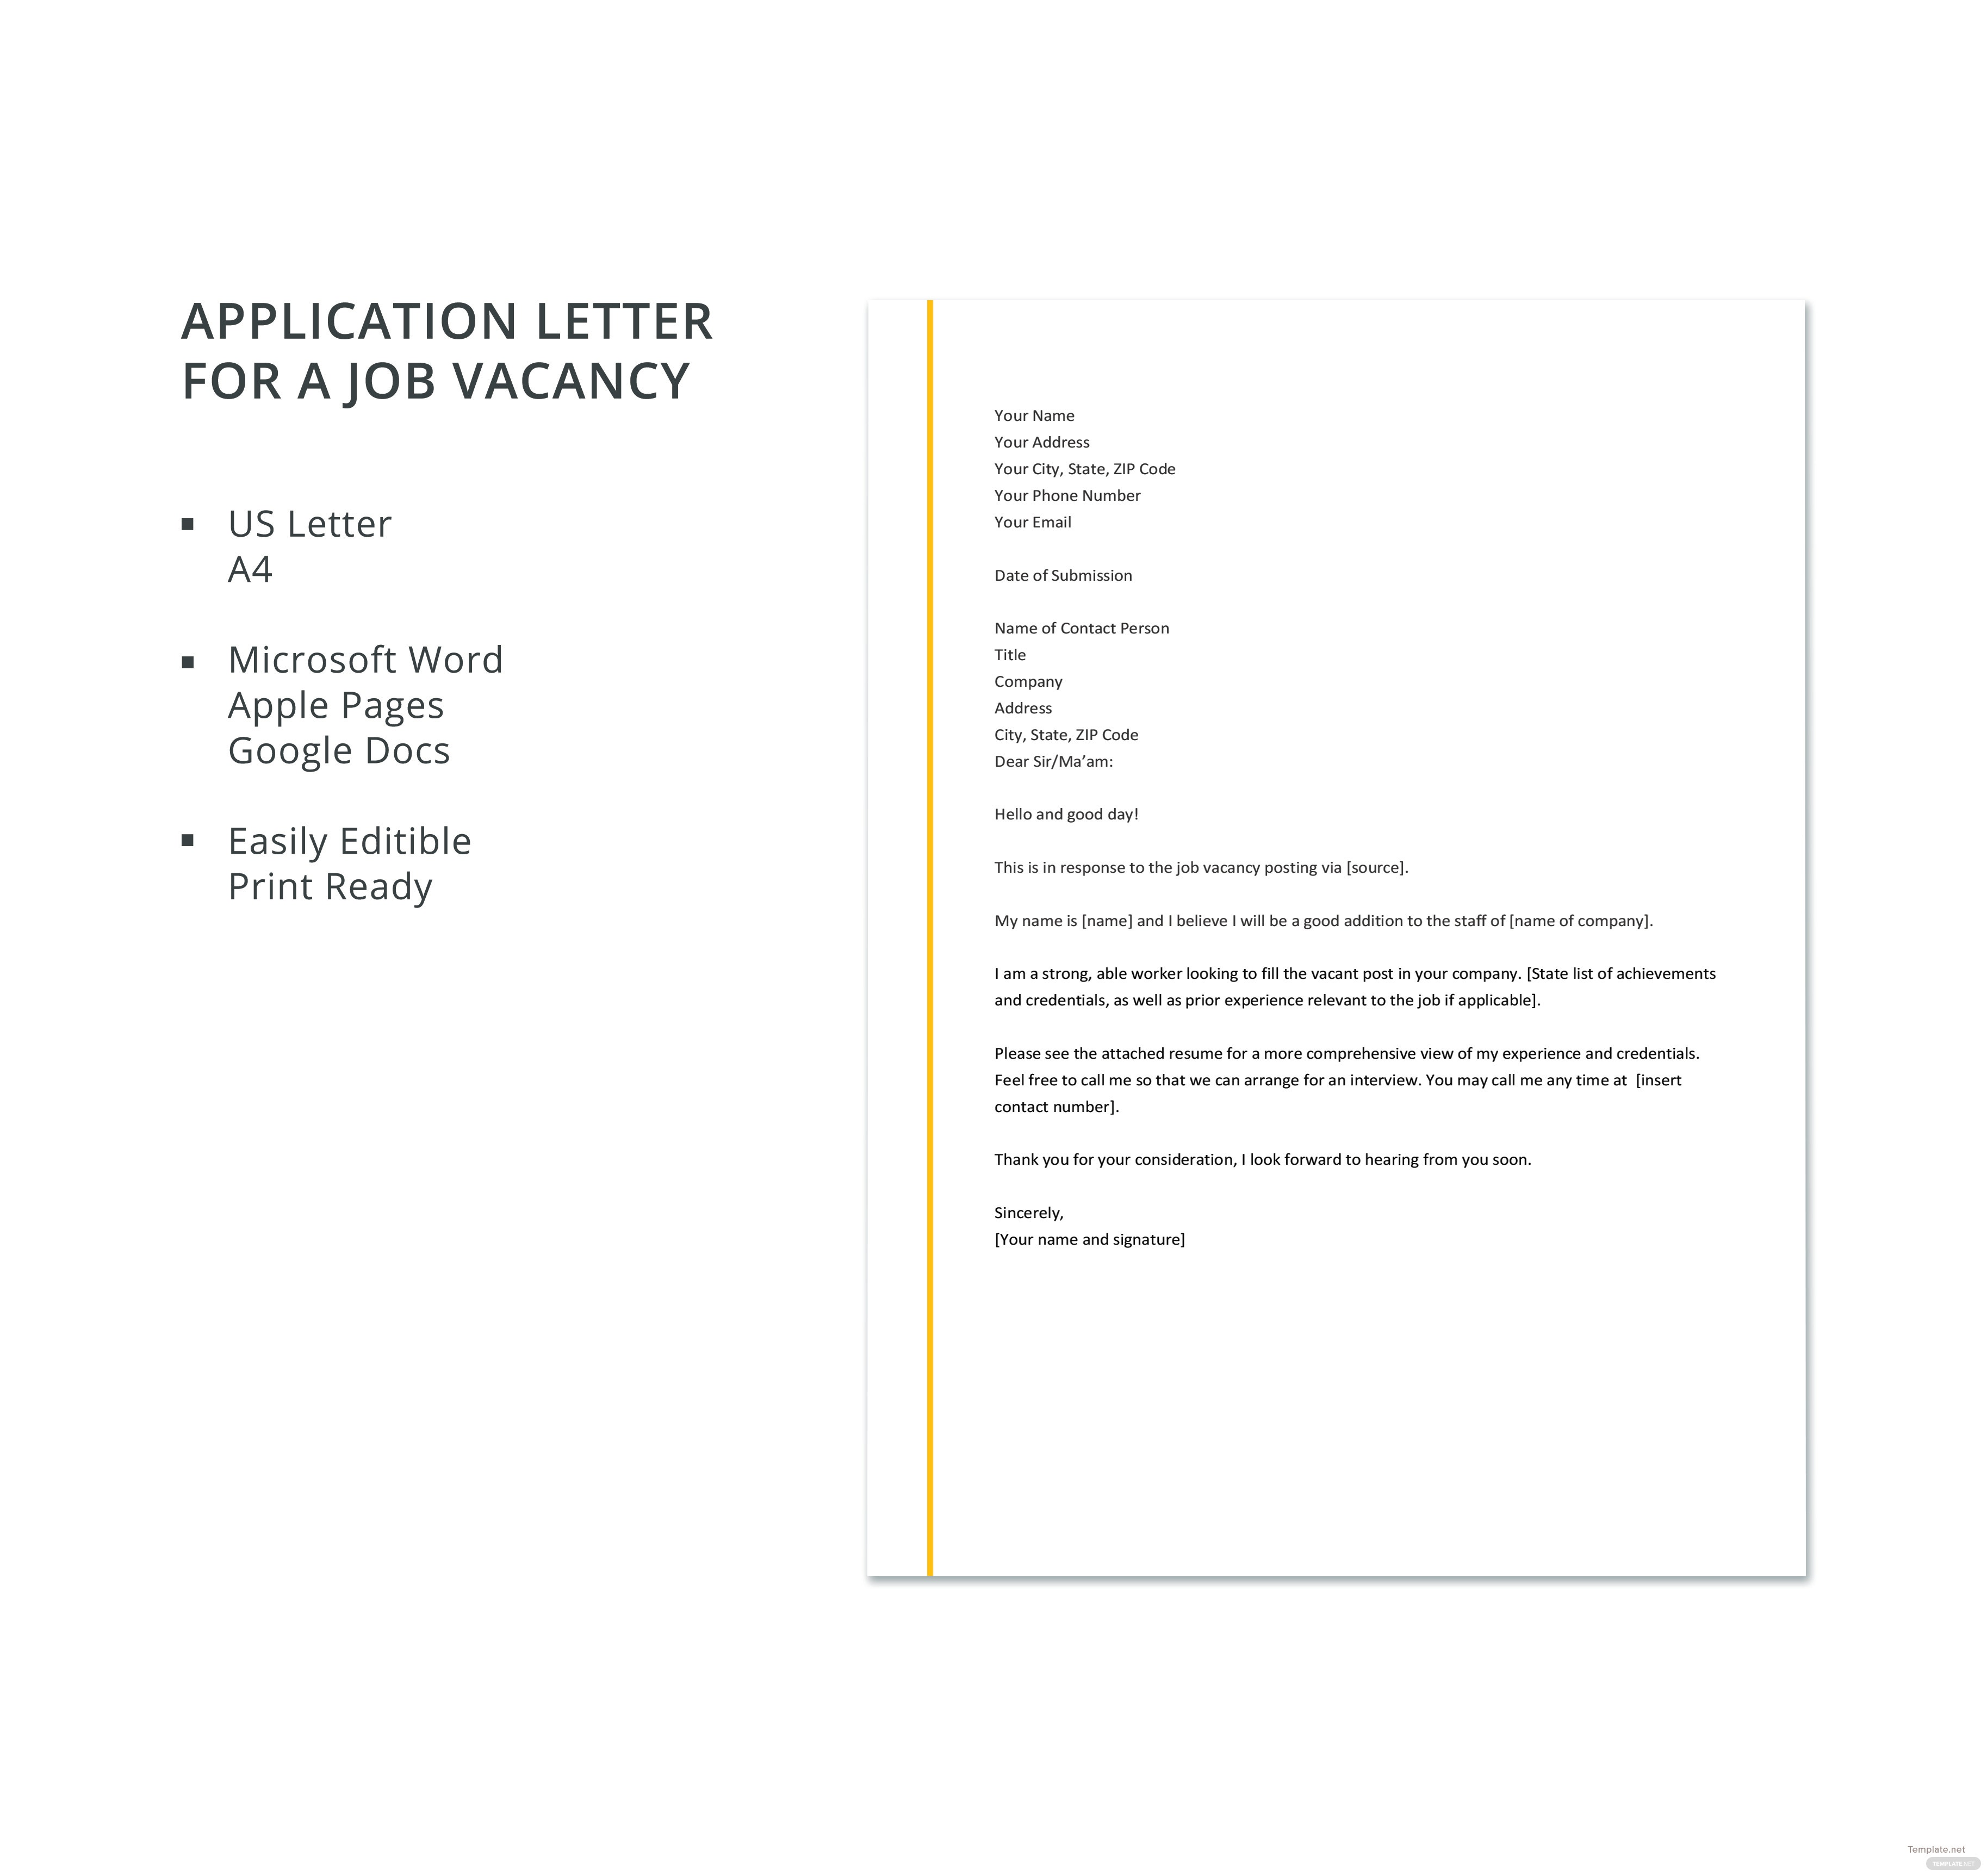 Free application letter template for a job vacancy in microsoft word free application letter template for a job vacancy spiritdancerdesigns Images